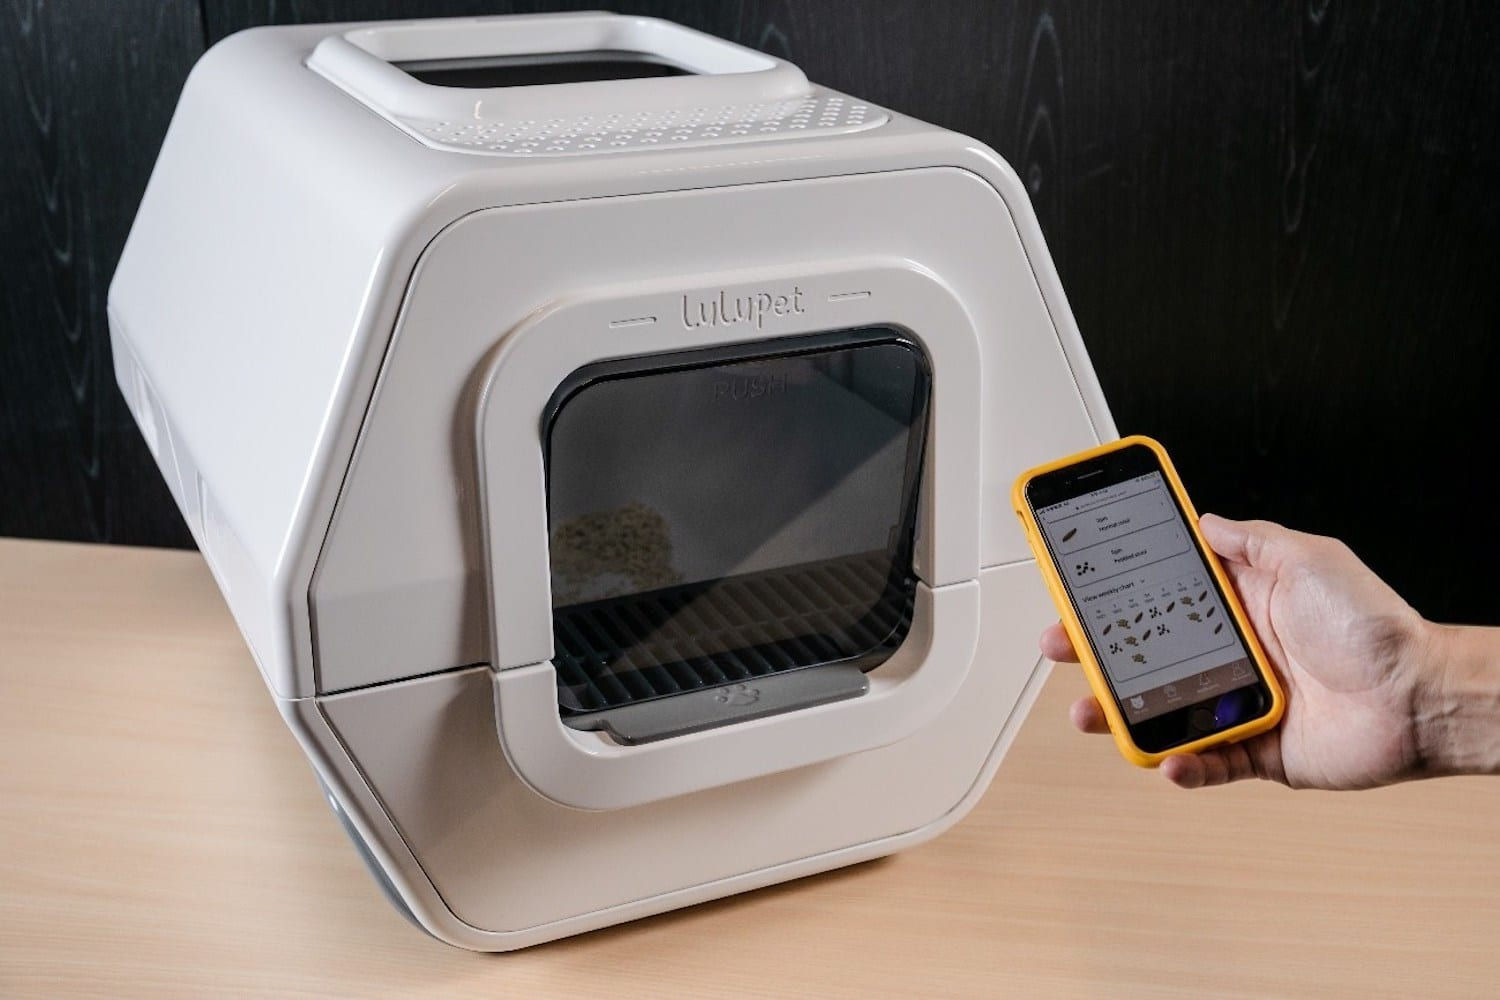 Wow! This litter box is really, really smart!